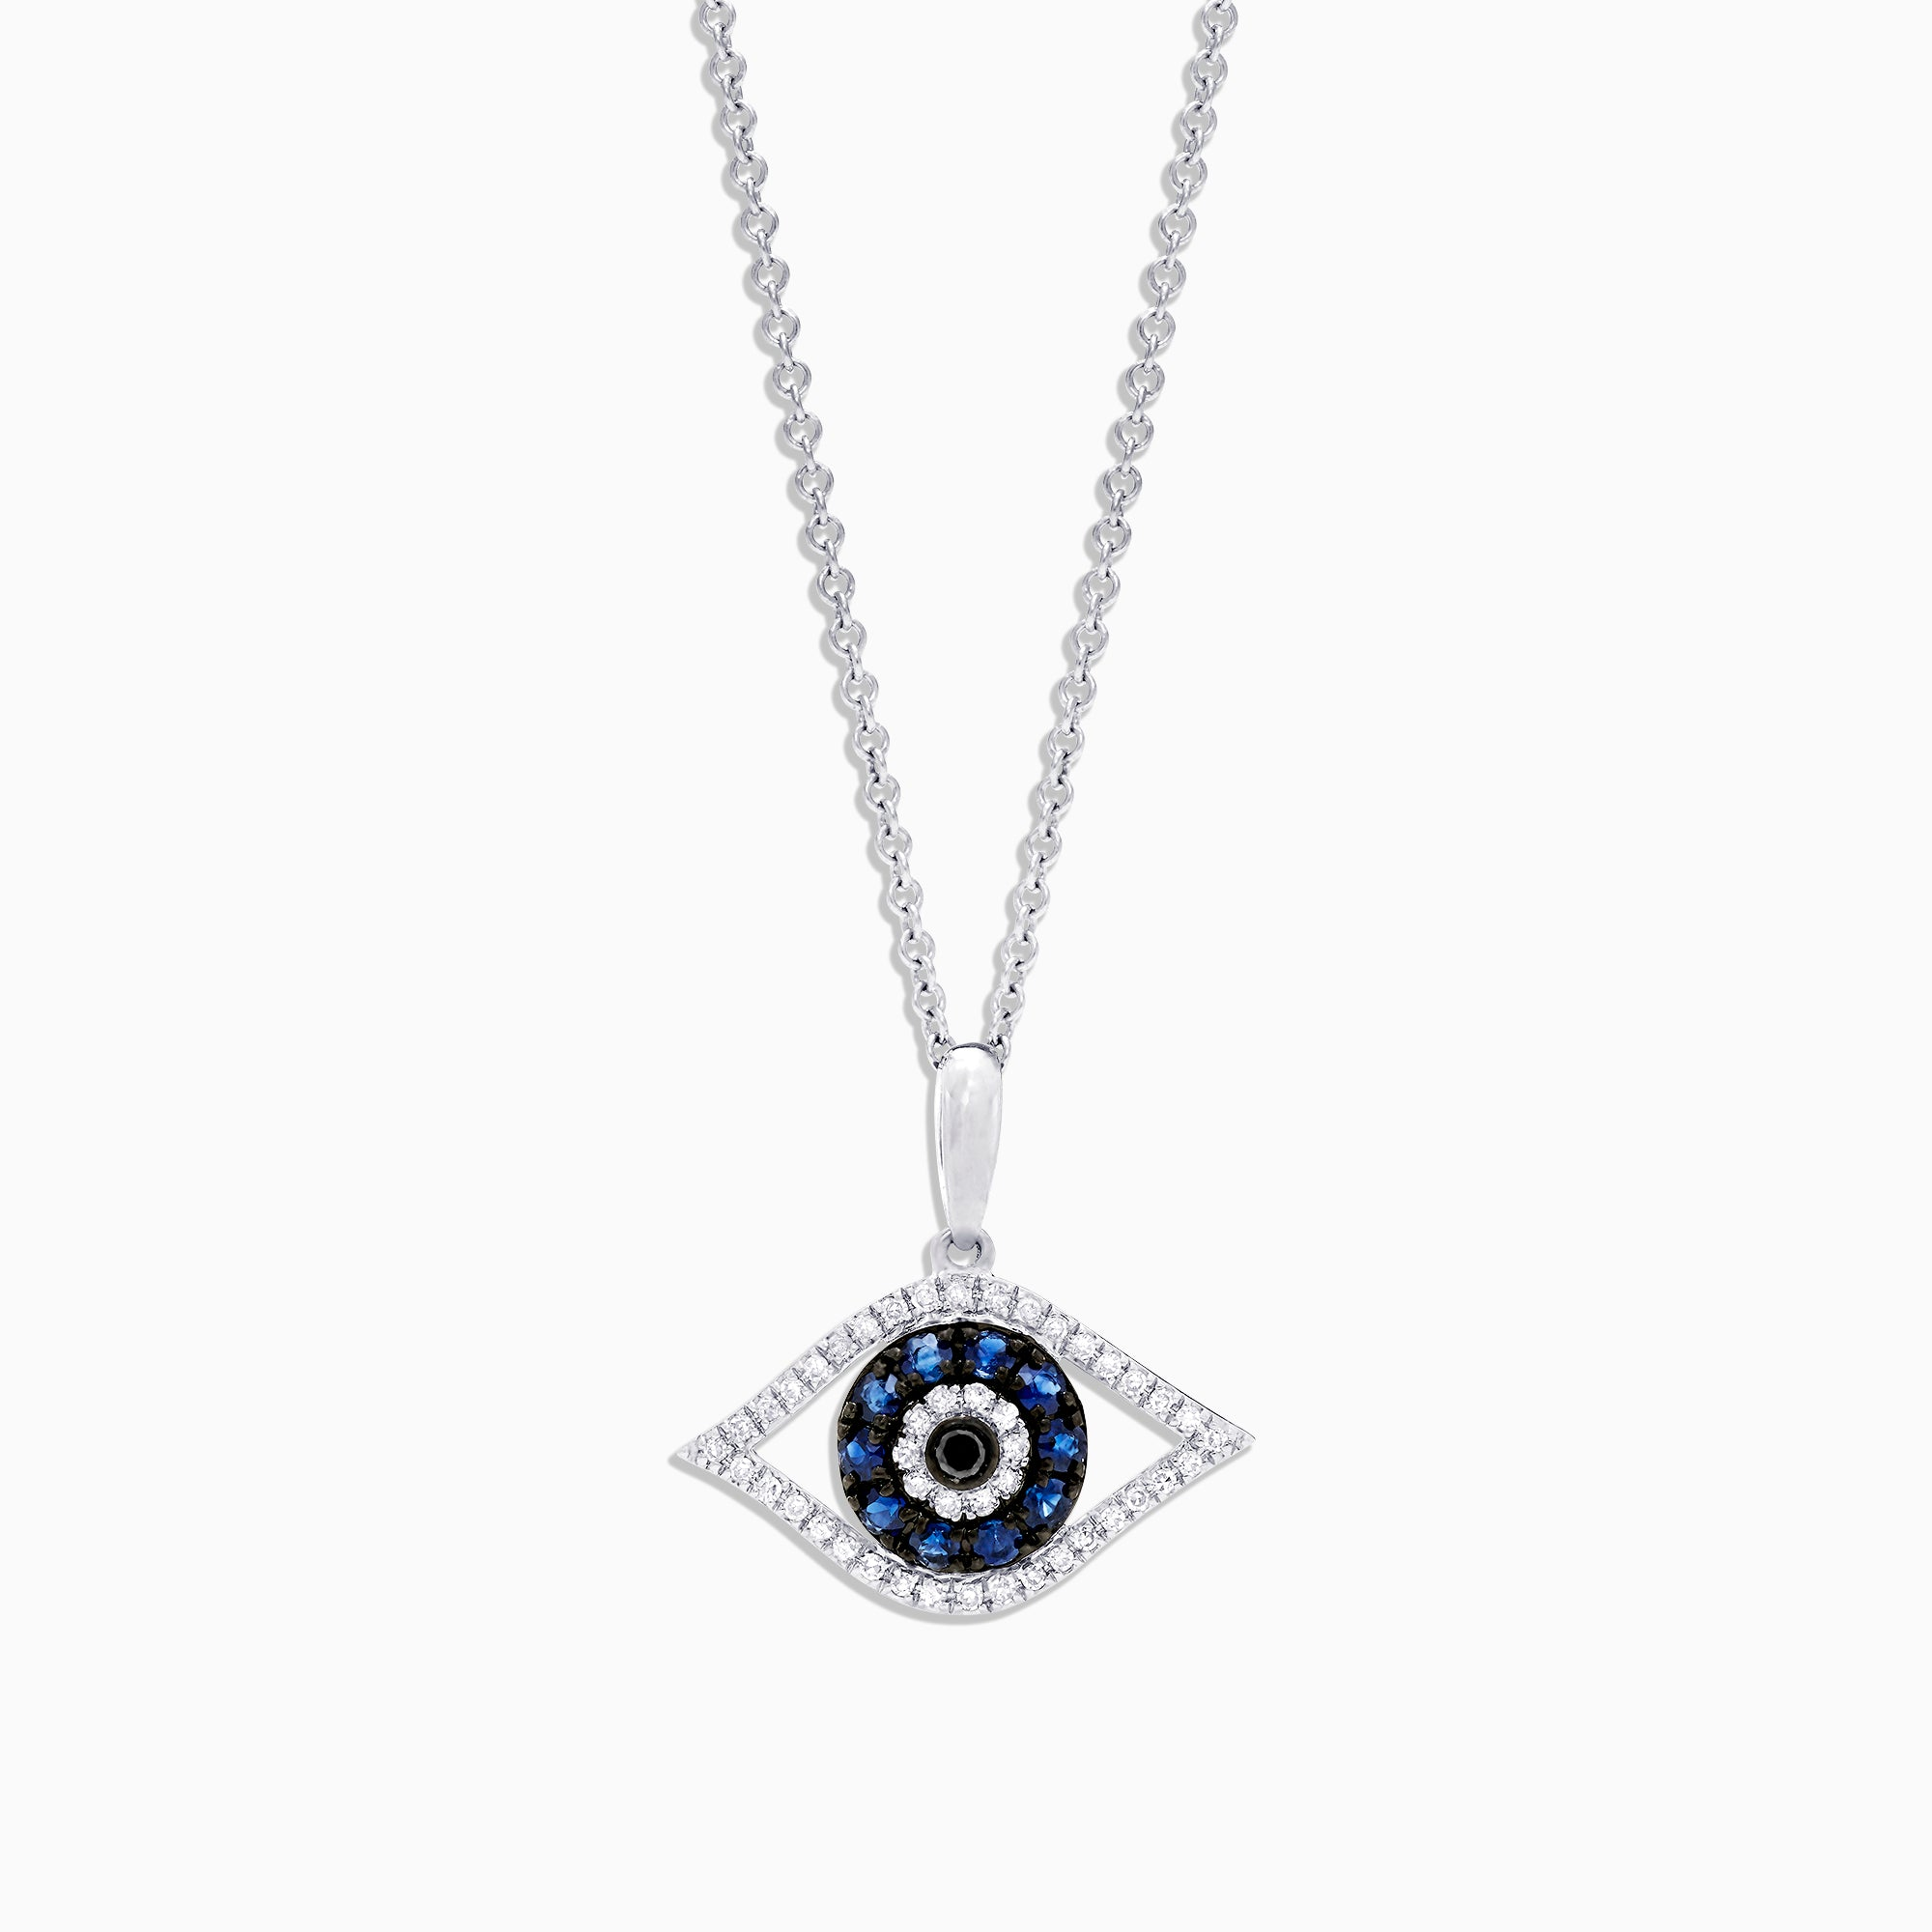 Effy Novelty 14K White Gold Sapphire & Diamond Evil Eye Pendant, 0.42 TCW